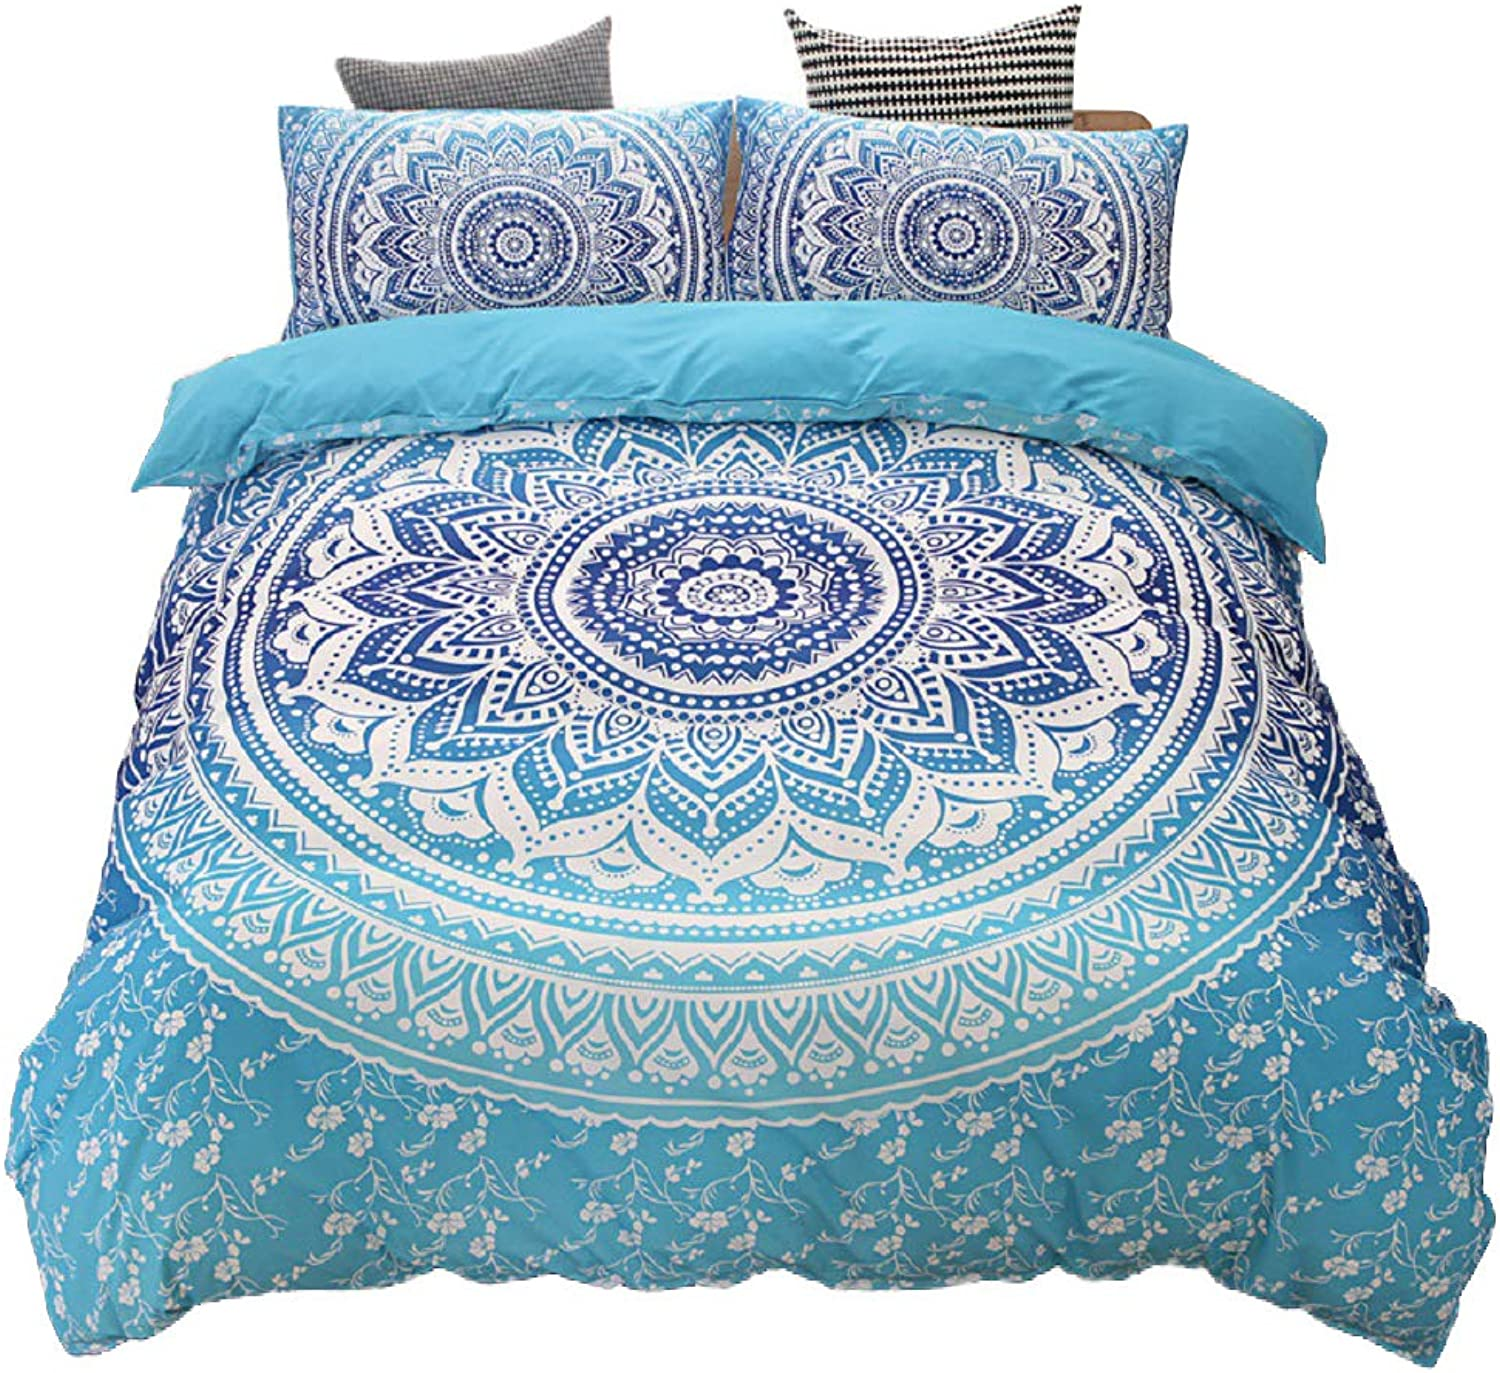 Mandala Flower Duvet Cover Set, Exotic Boho Bedroom Bedding Sets, Luxury Soft Comforter Cover, Hippie Quilt Cover with Zipper Closure (3pcs, Queen, bluee)